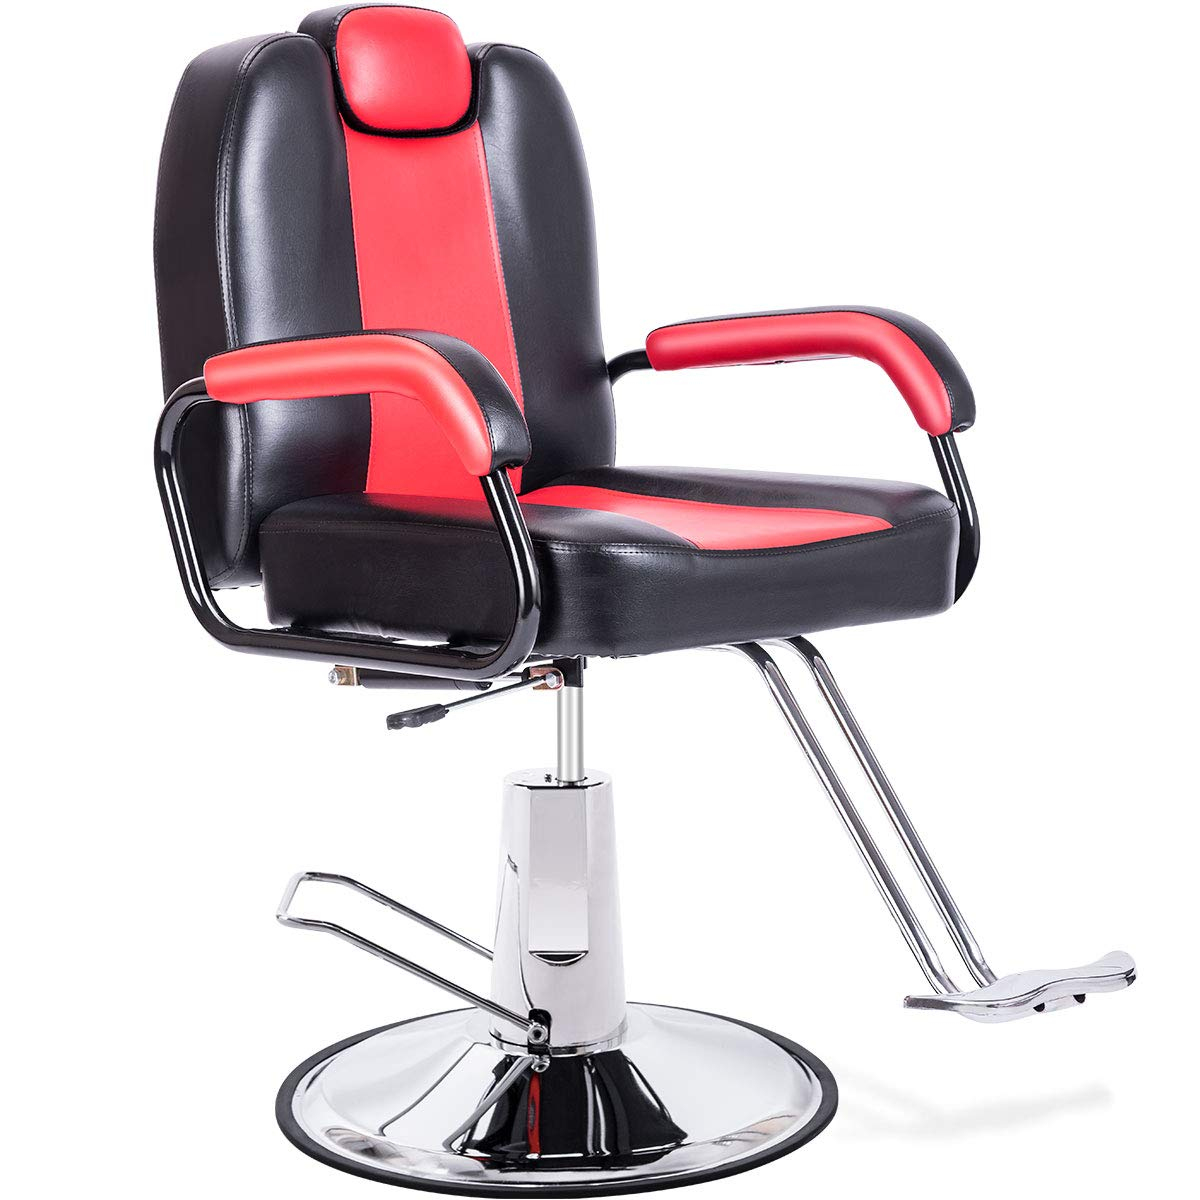 Merax Hydraulic Reclining Barber Chair, Up to 20% Extra Larger Seat + Heavy Duty Hydraulic Pump, 2019 Upgraded Salon Beauty Spa Chair (Black/Red)